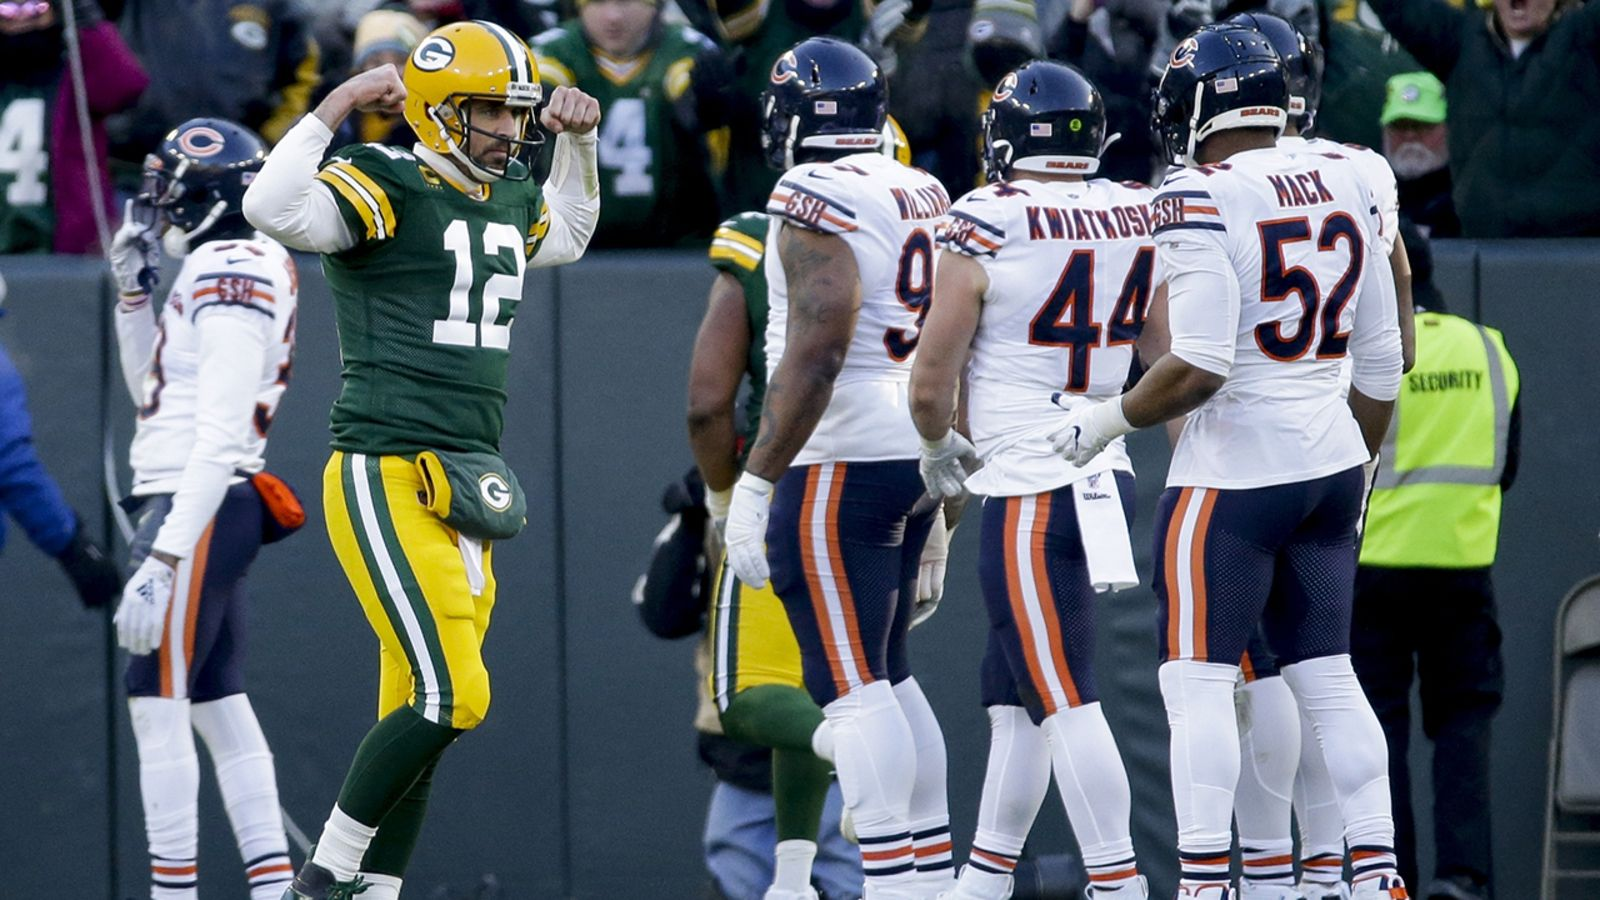 NFL star, Green Bay Packers quarterback Aaron Rodgers will not be traded, turn down San Francisco 49ers, according to GM